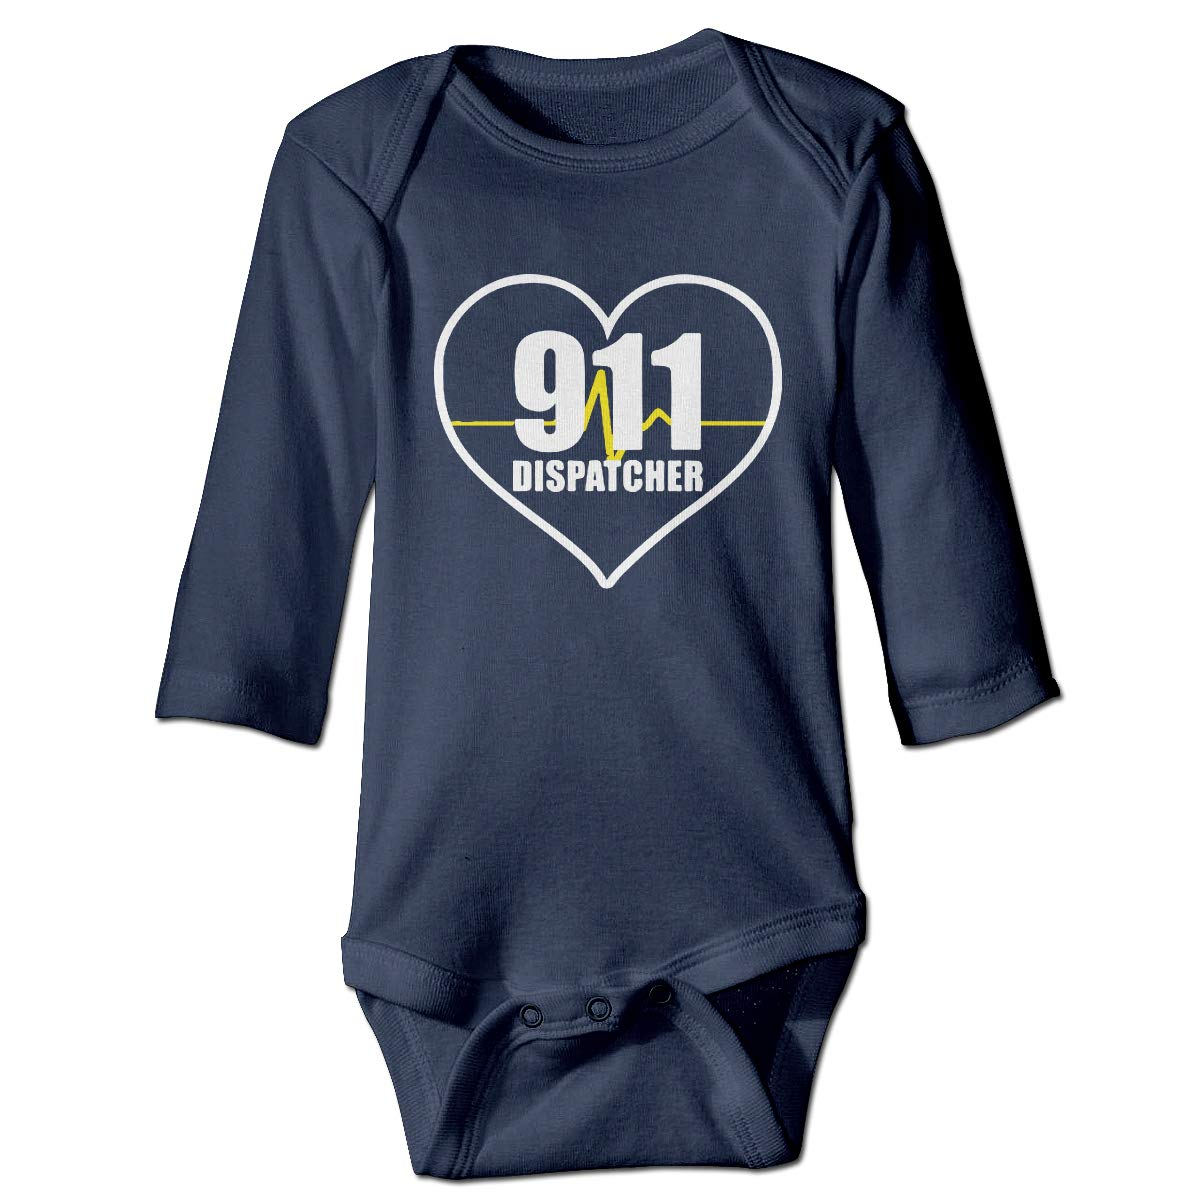 A14UBP Infant Baby Girls Long Sleeve Baby Clothes 911 Dispatcher Heart Thin Gold Line Unisex Button Playsuit Outfit Clothes